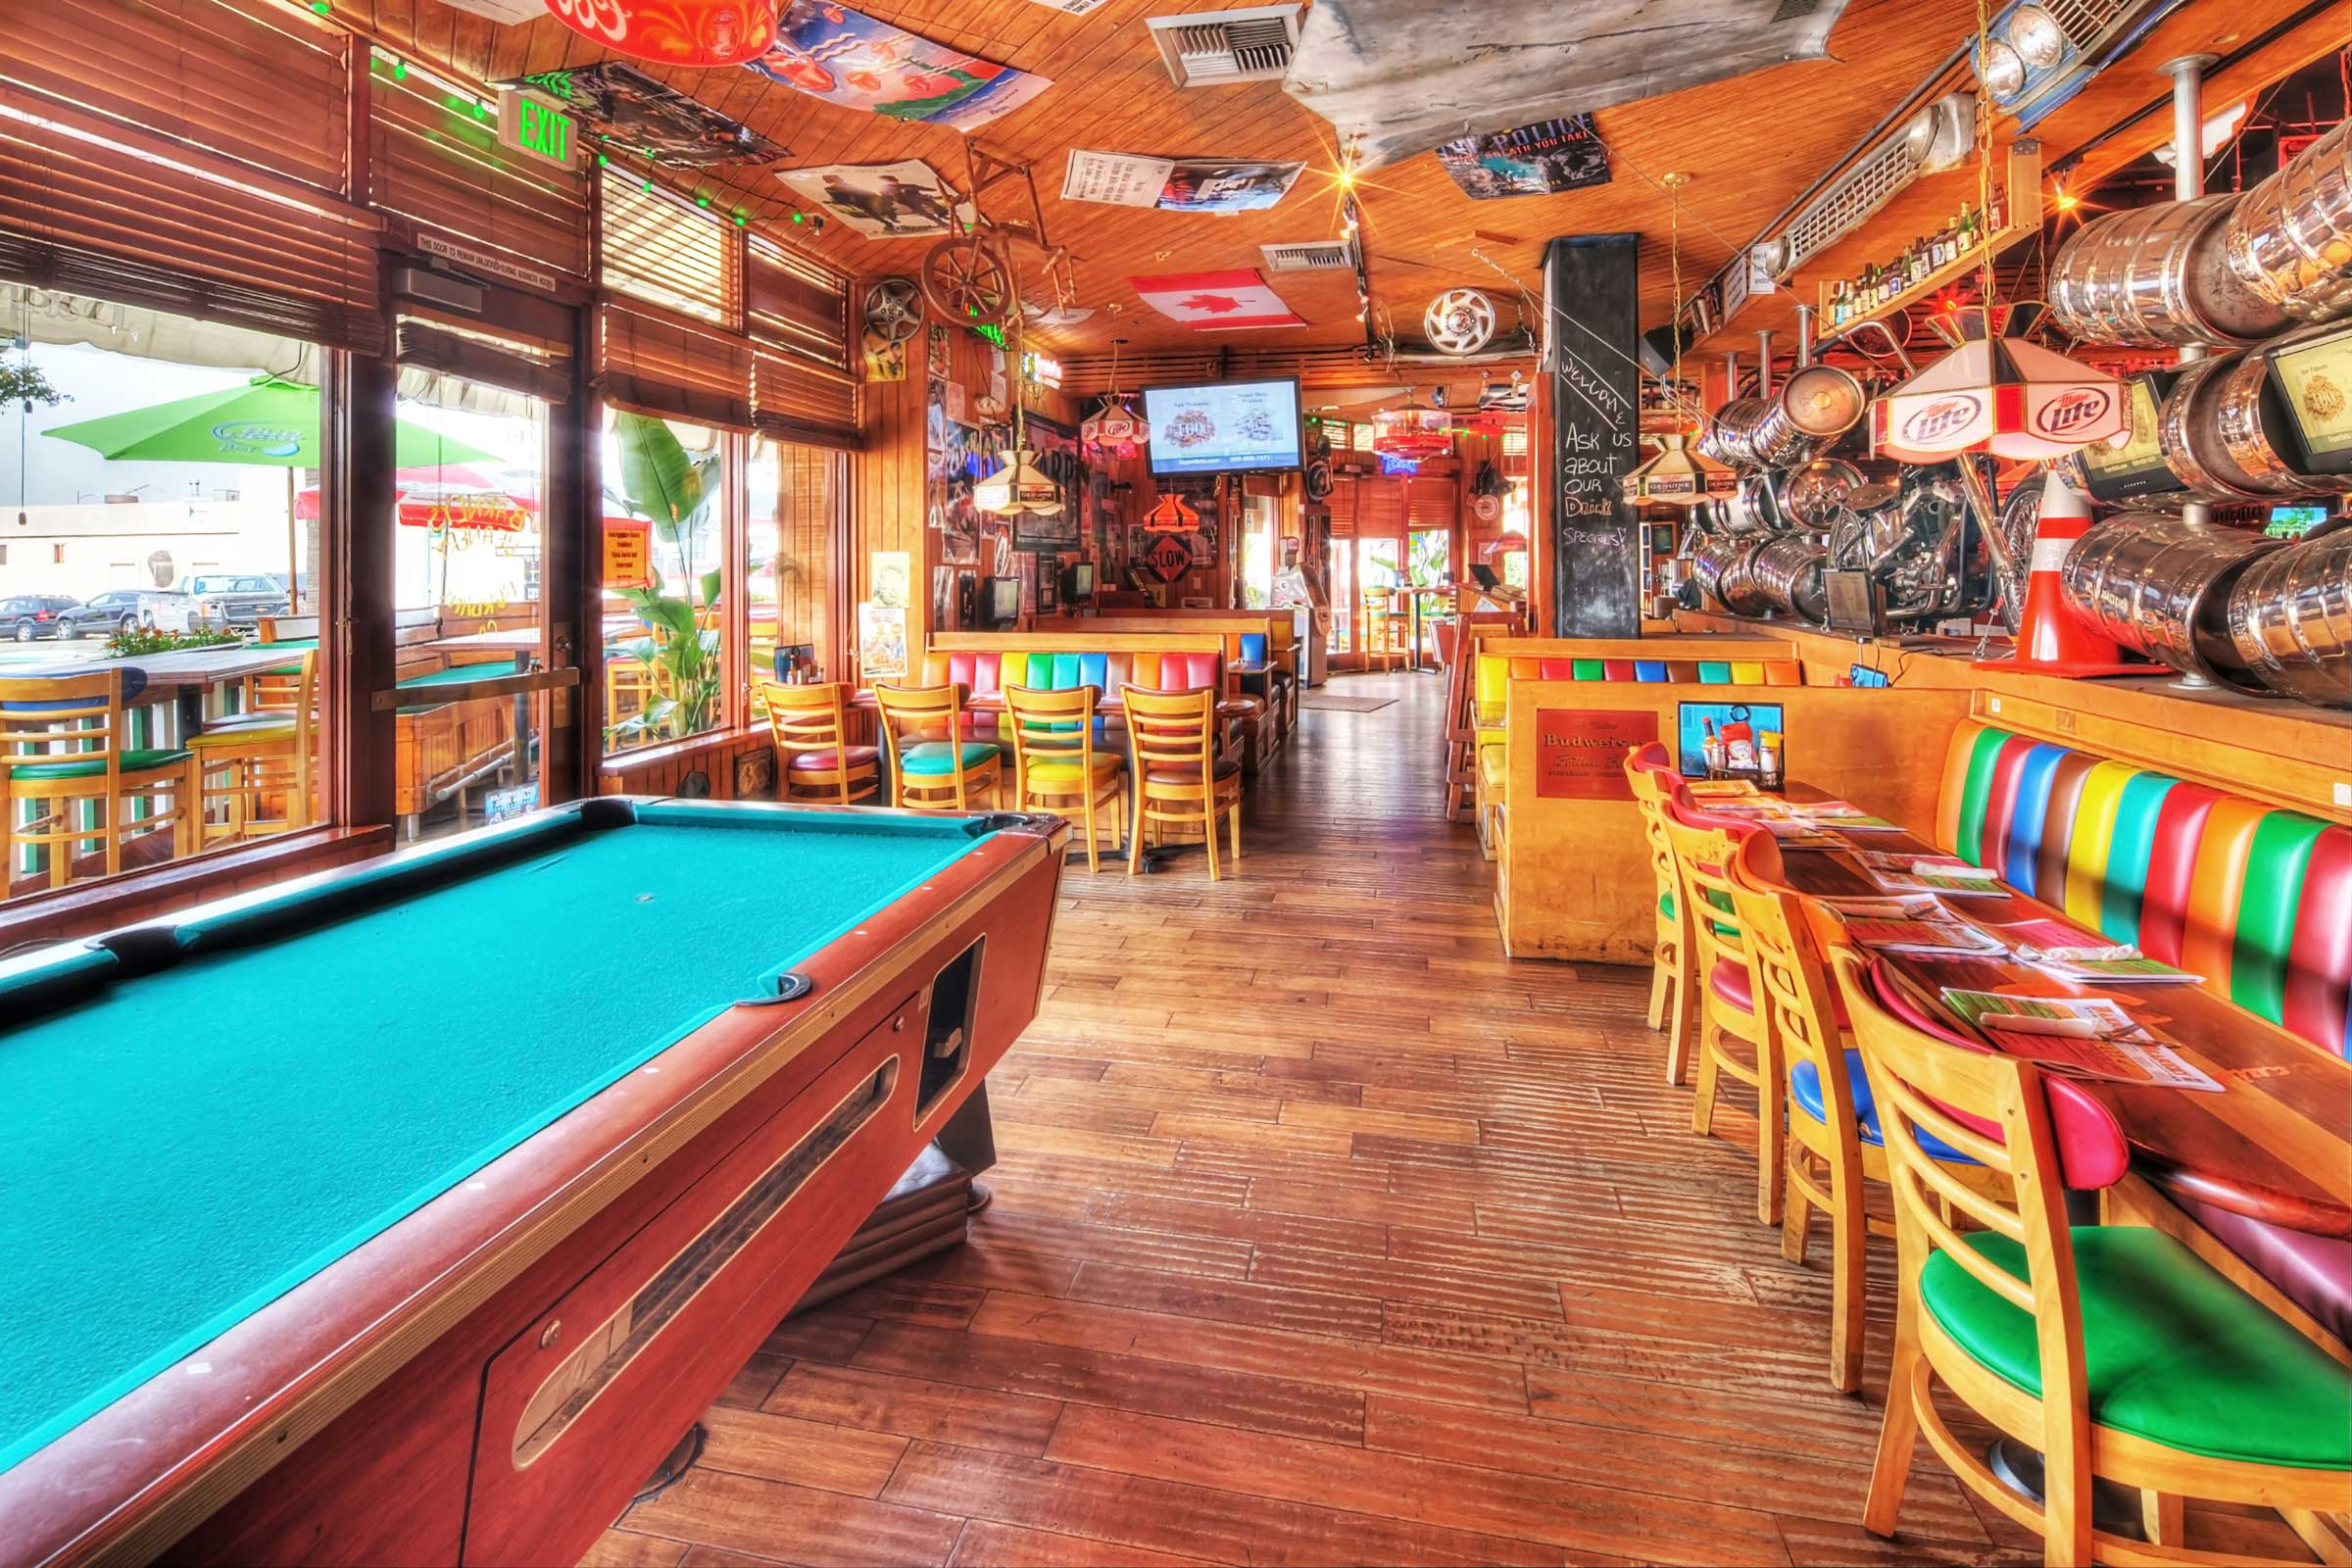 Burbank pool table and front seating